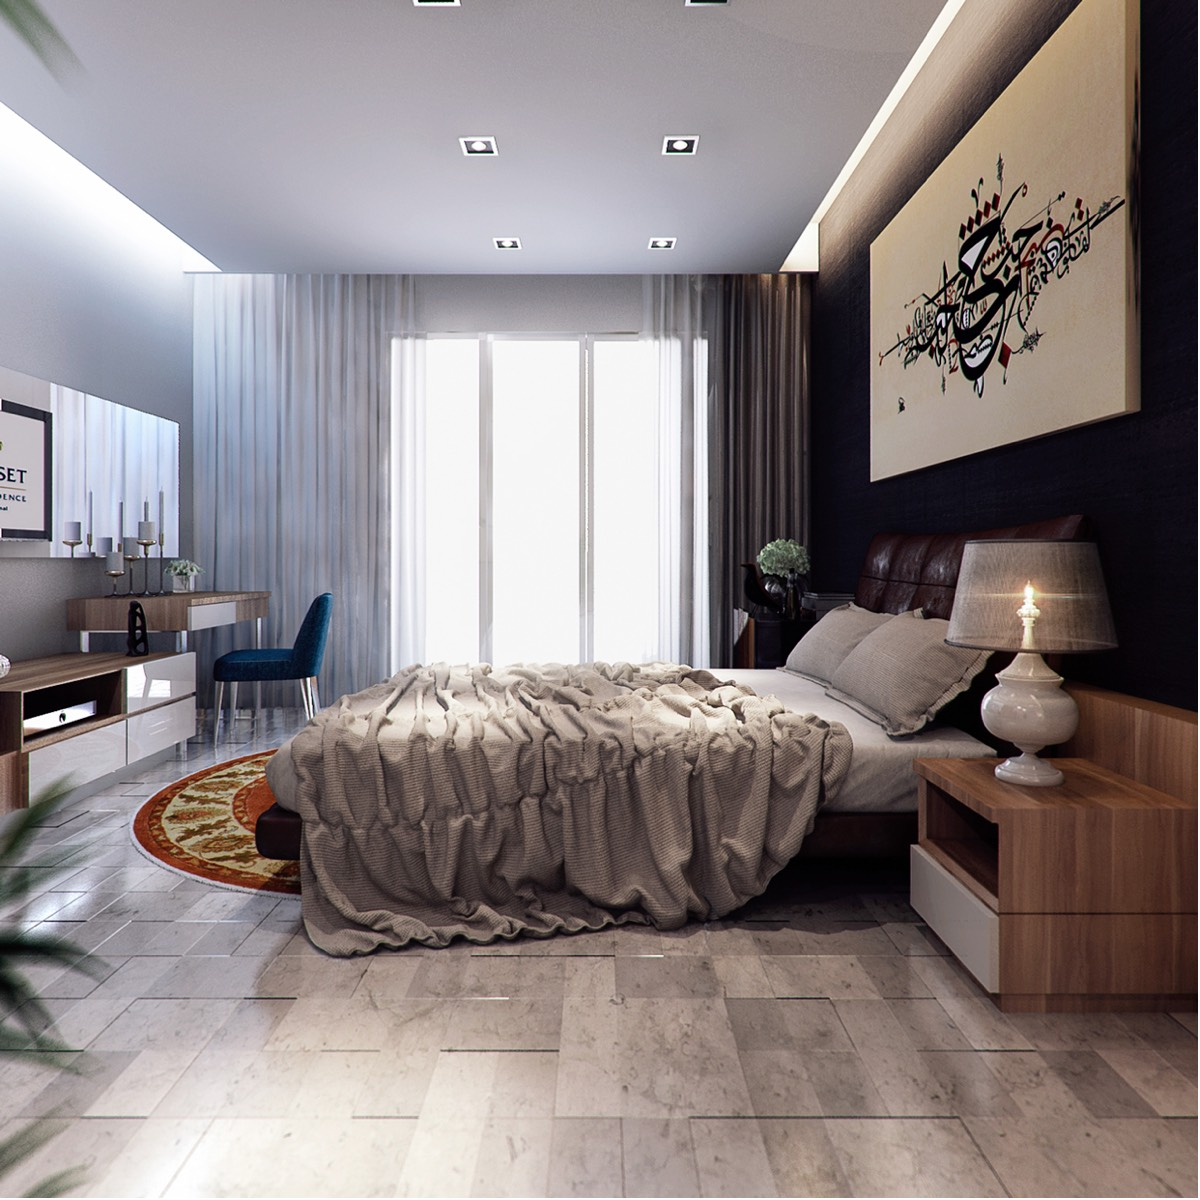 10 Bedrooms for Designer Dreams